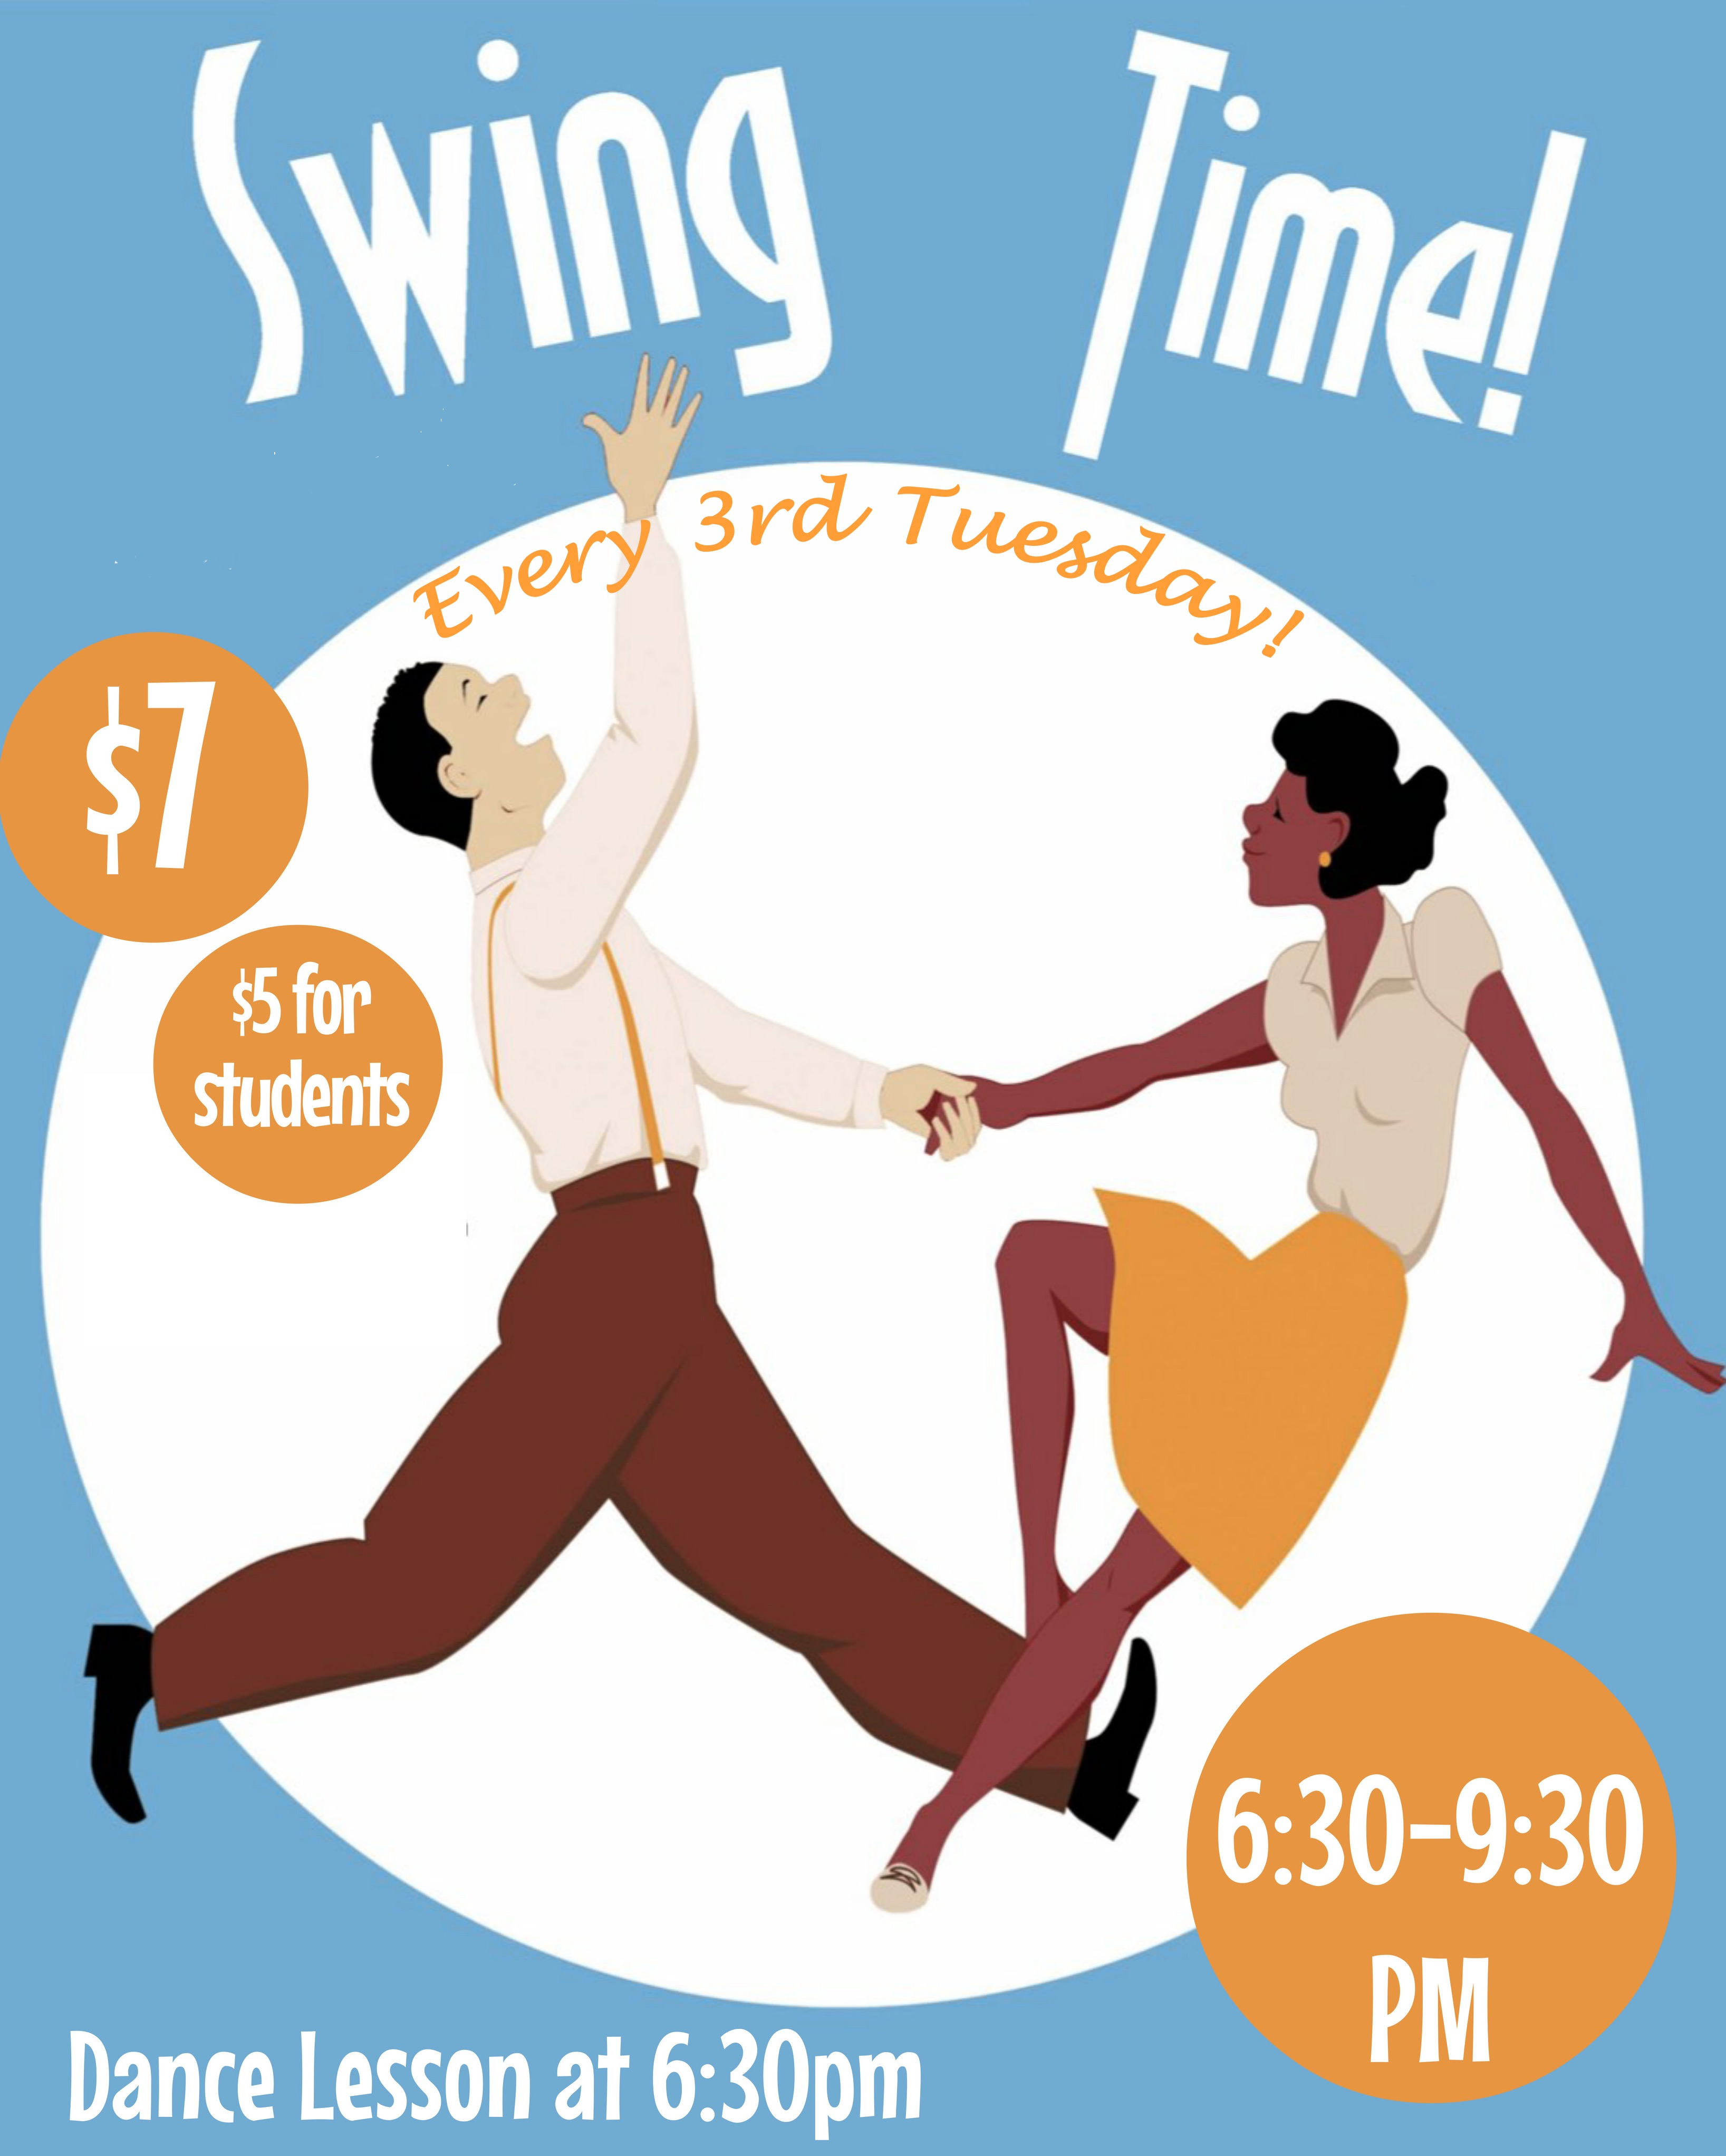 swing dance ithaca commons live music ballroom team cornell ithaca college university lindy hop foxtrot waltz east west coast range